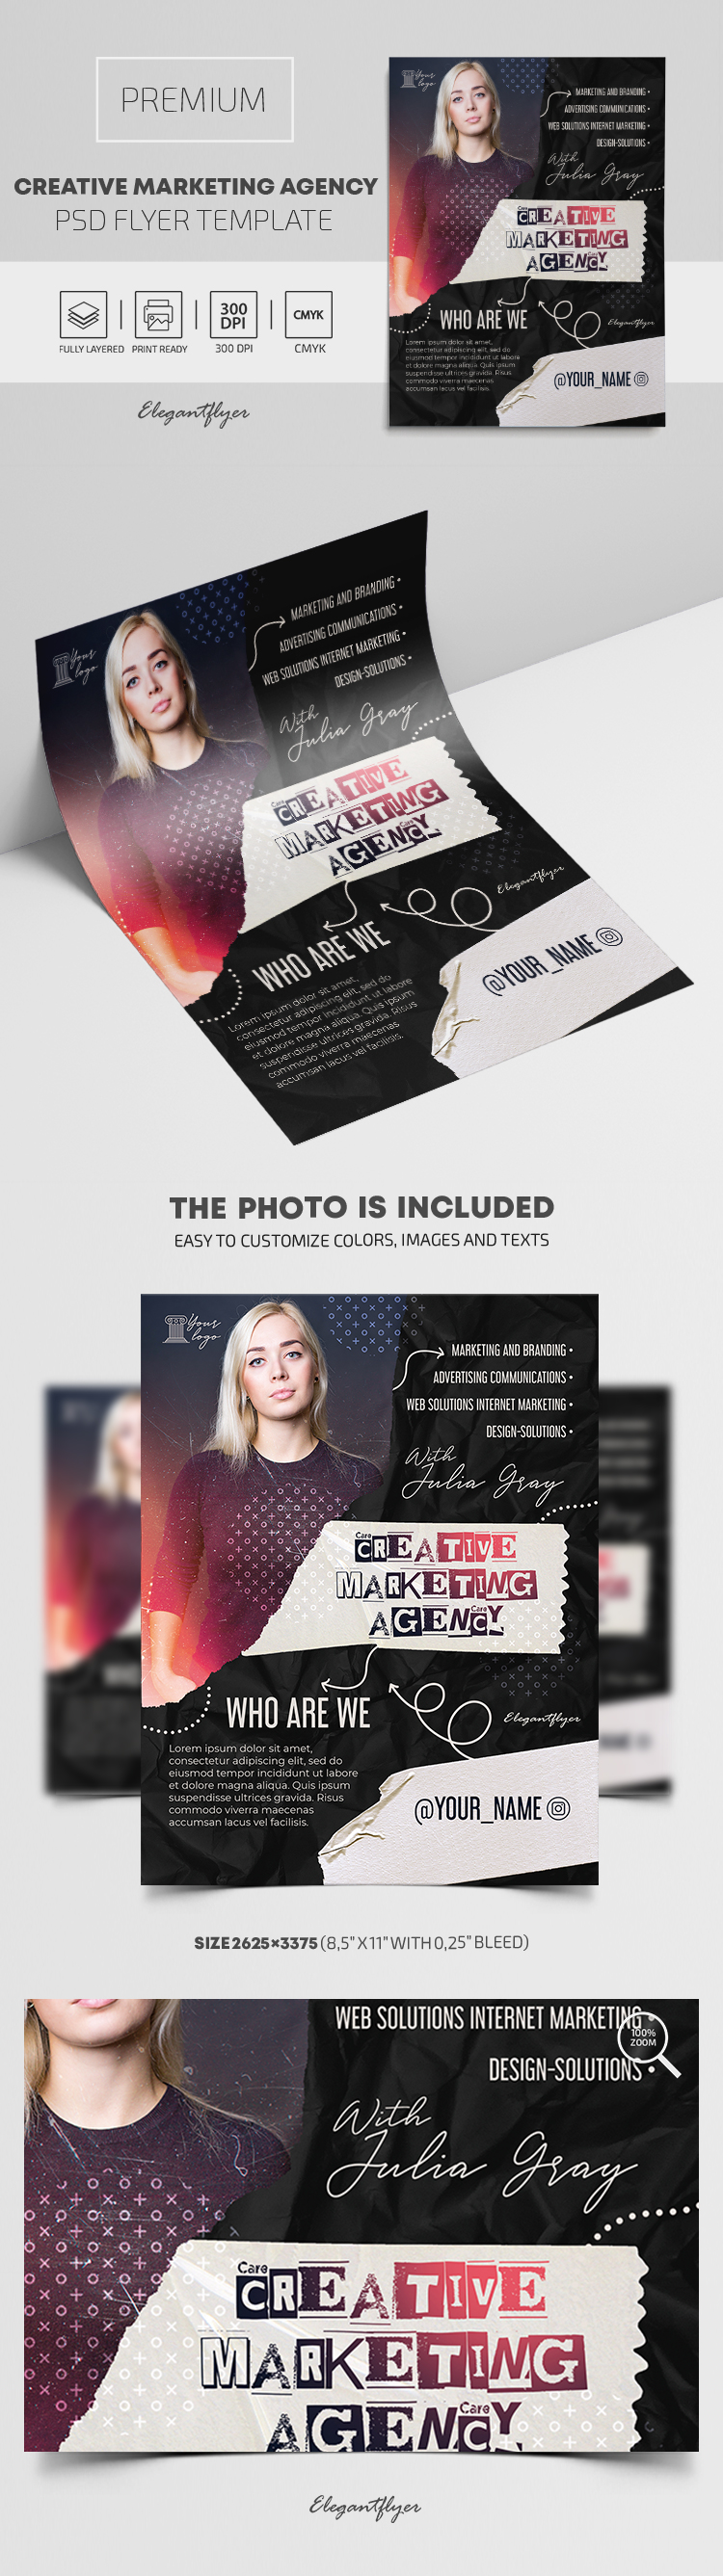 Creative Marketing Agency – Premium PSD Flyer Template